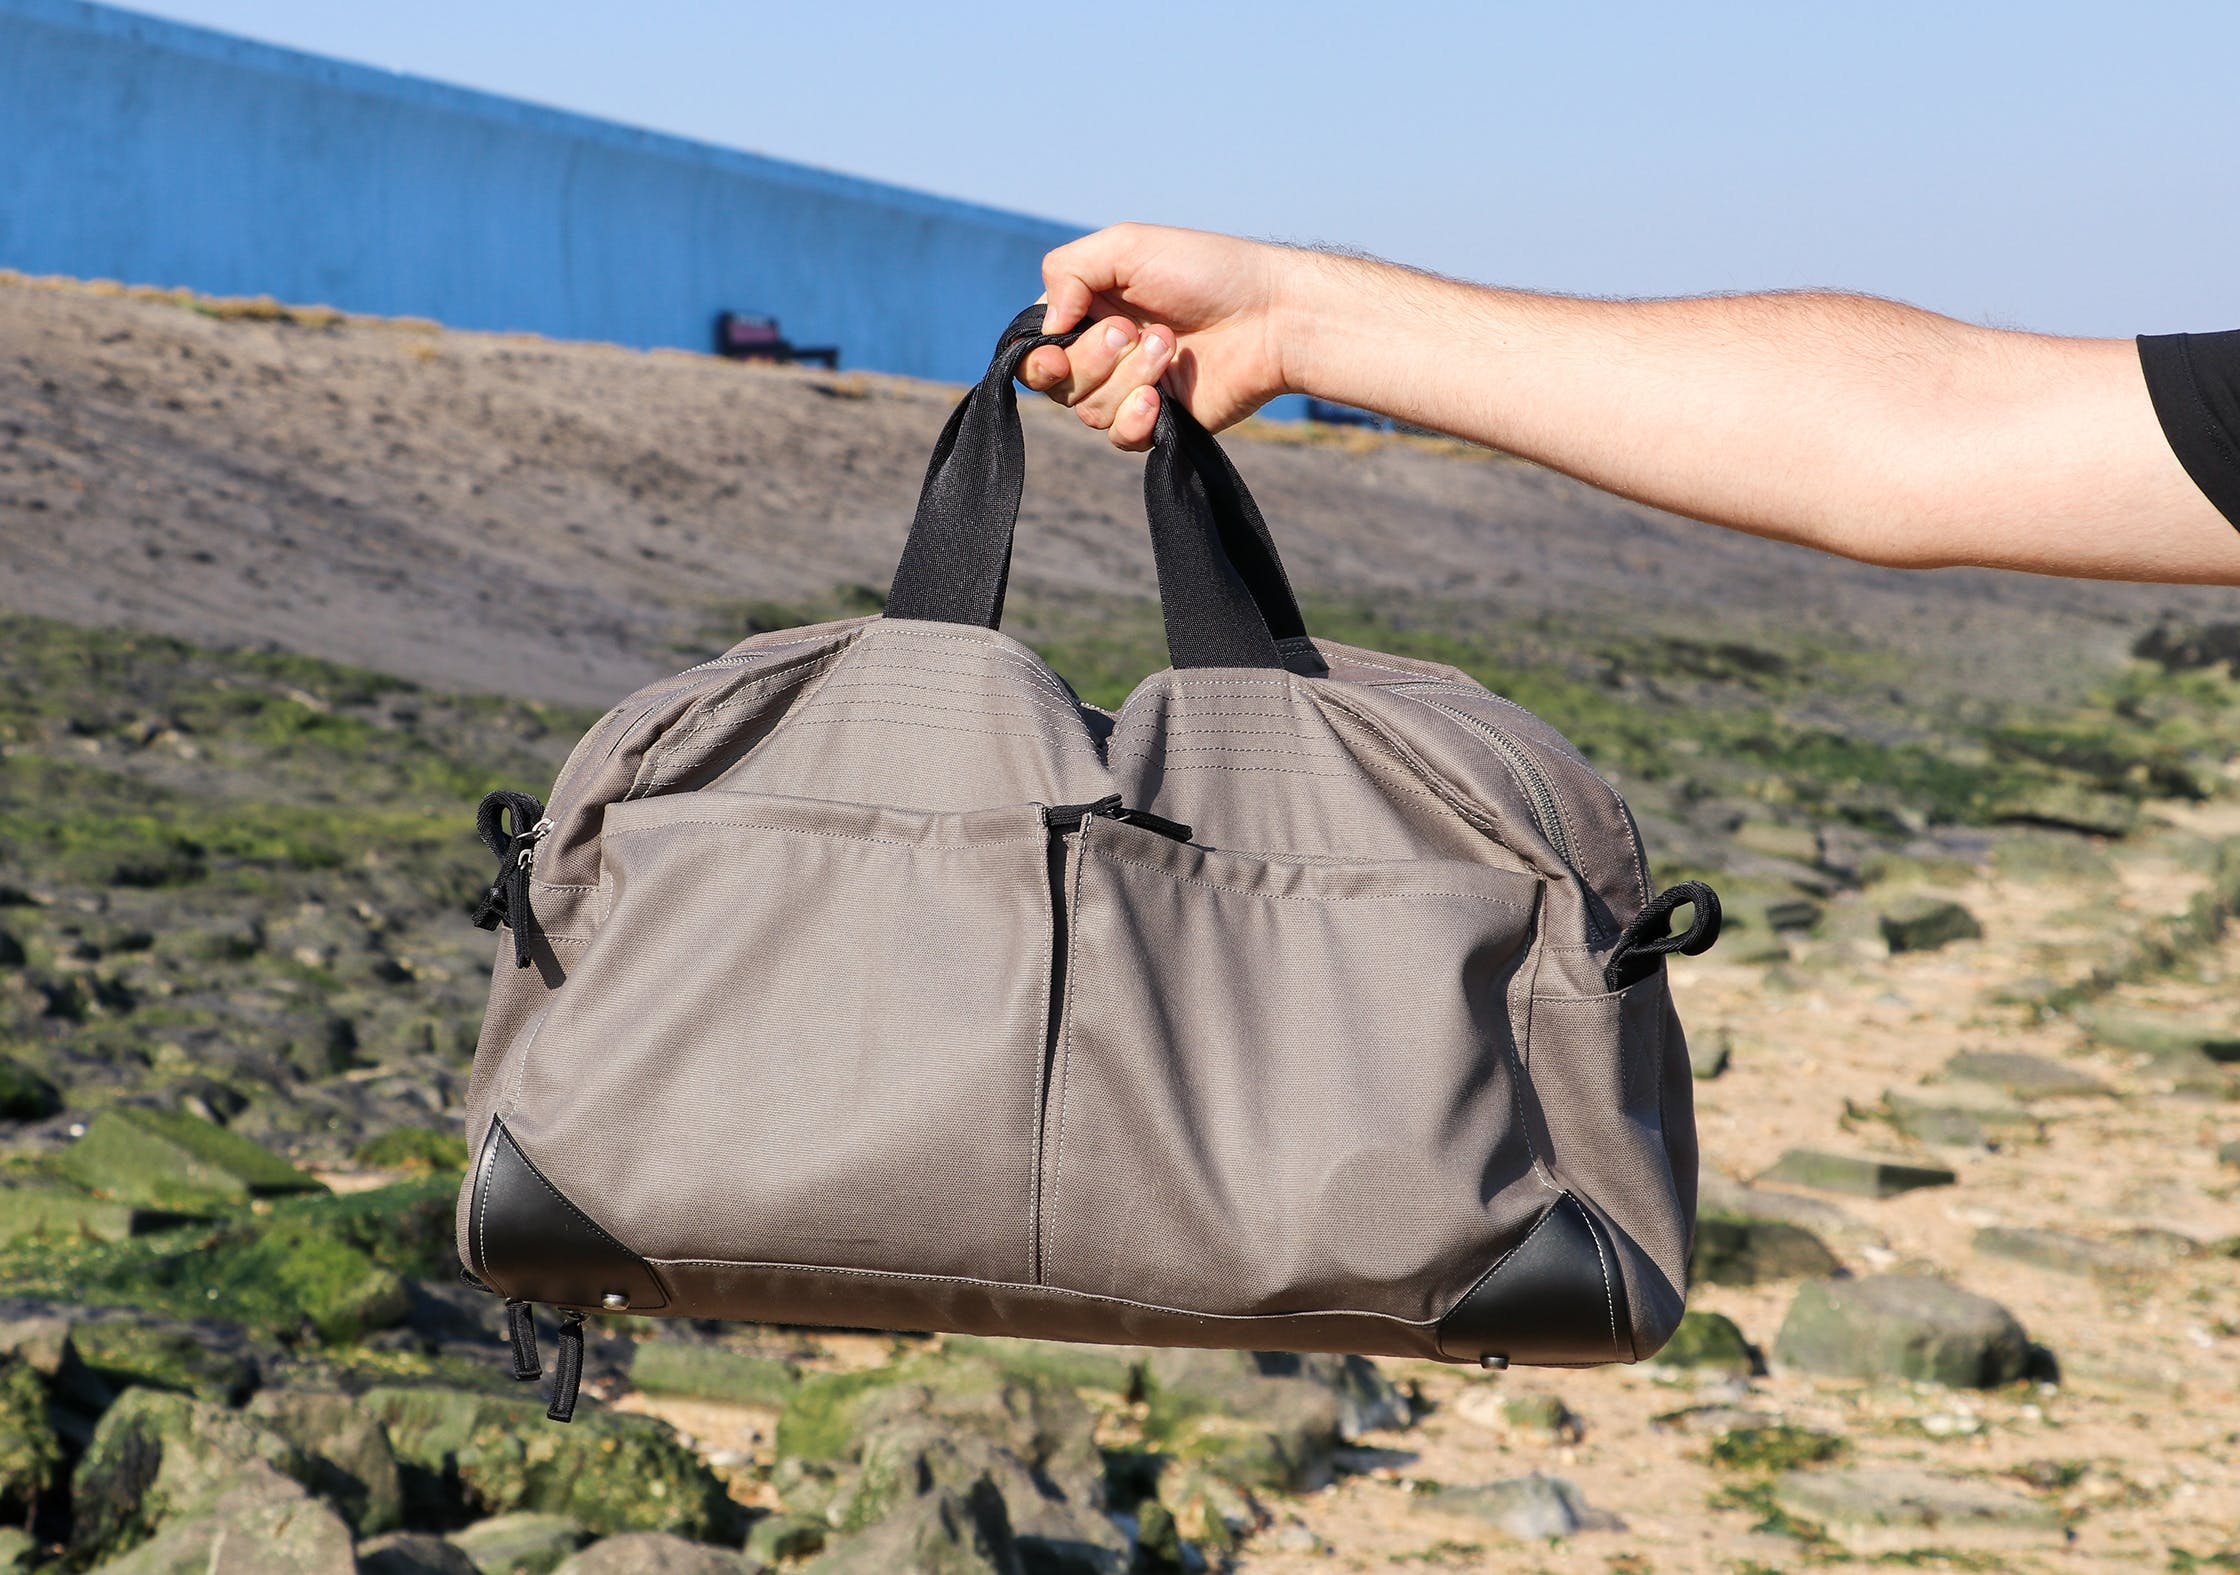 Pakt One 35L Duffel Travel Bag Review  874b318e1e190